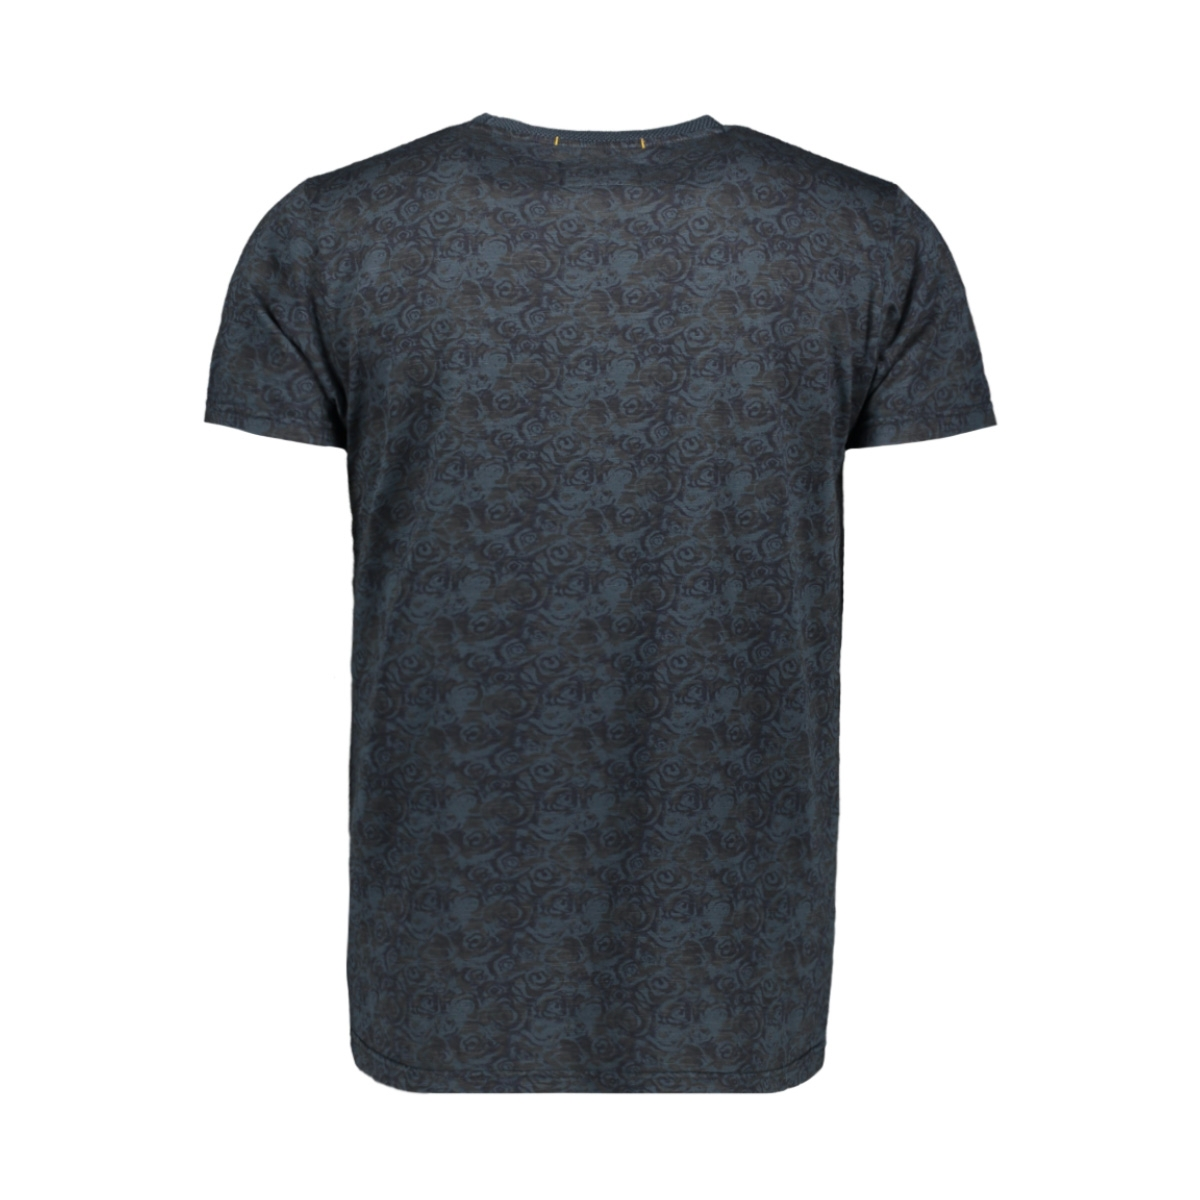 all over printed t shirt 92350702 no-excess t-shirt 078 night